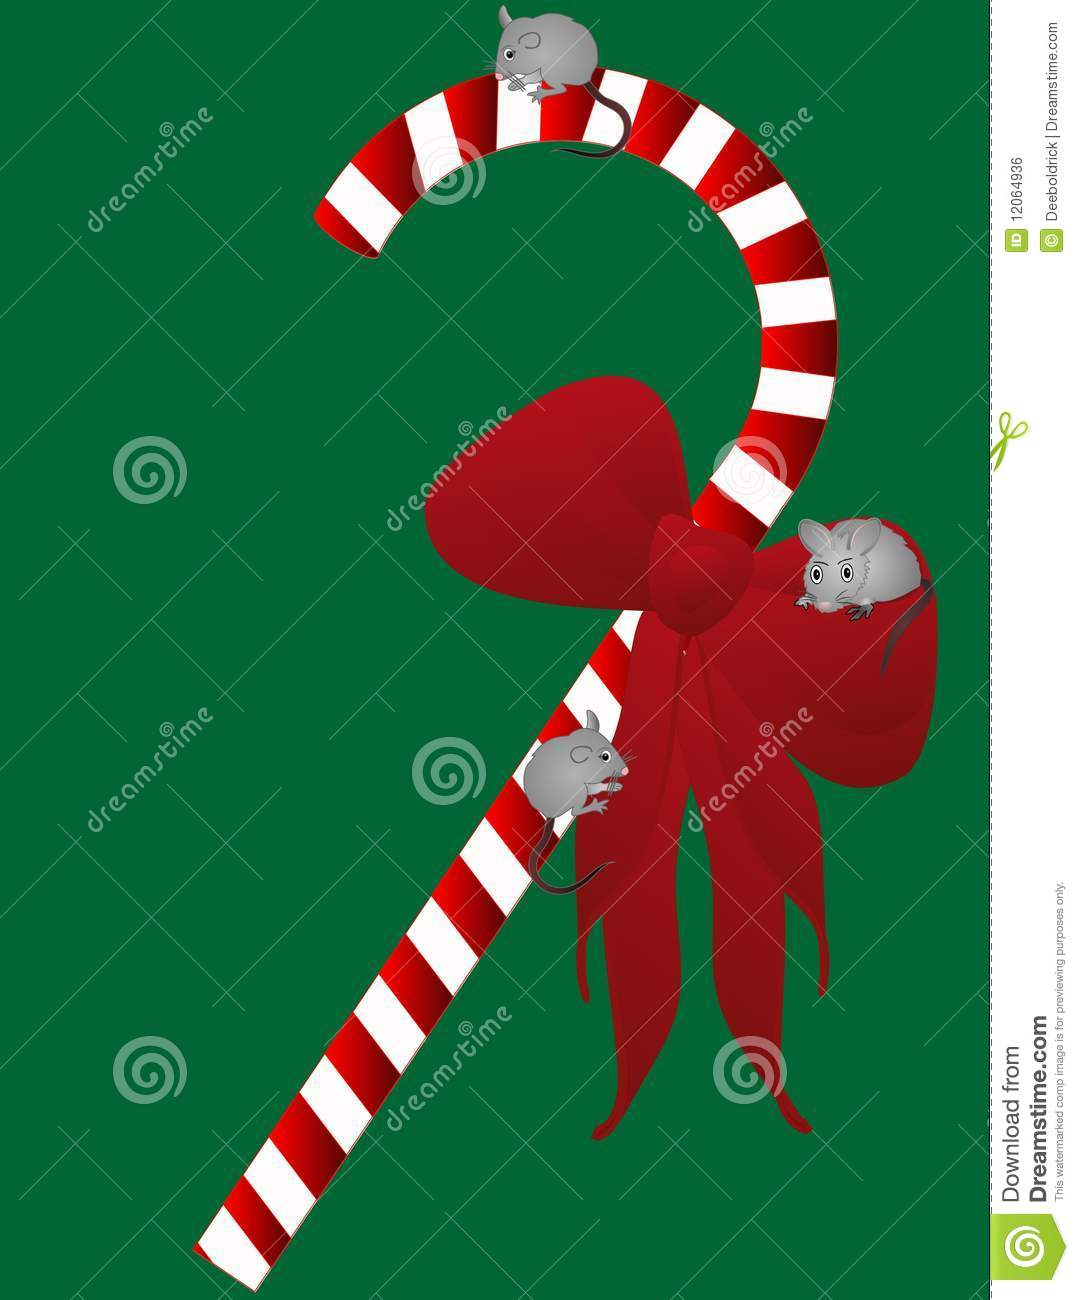 Yuletide Candycane With 3 Mice... Royalty Free Stock Image - Image ...